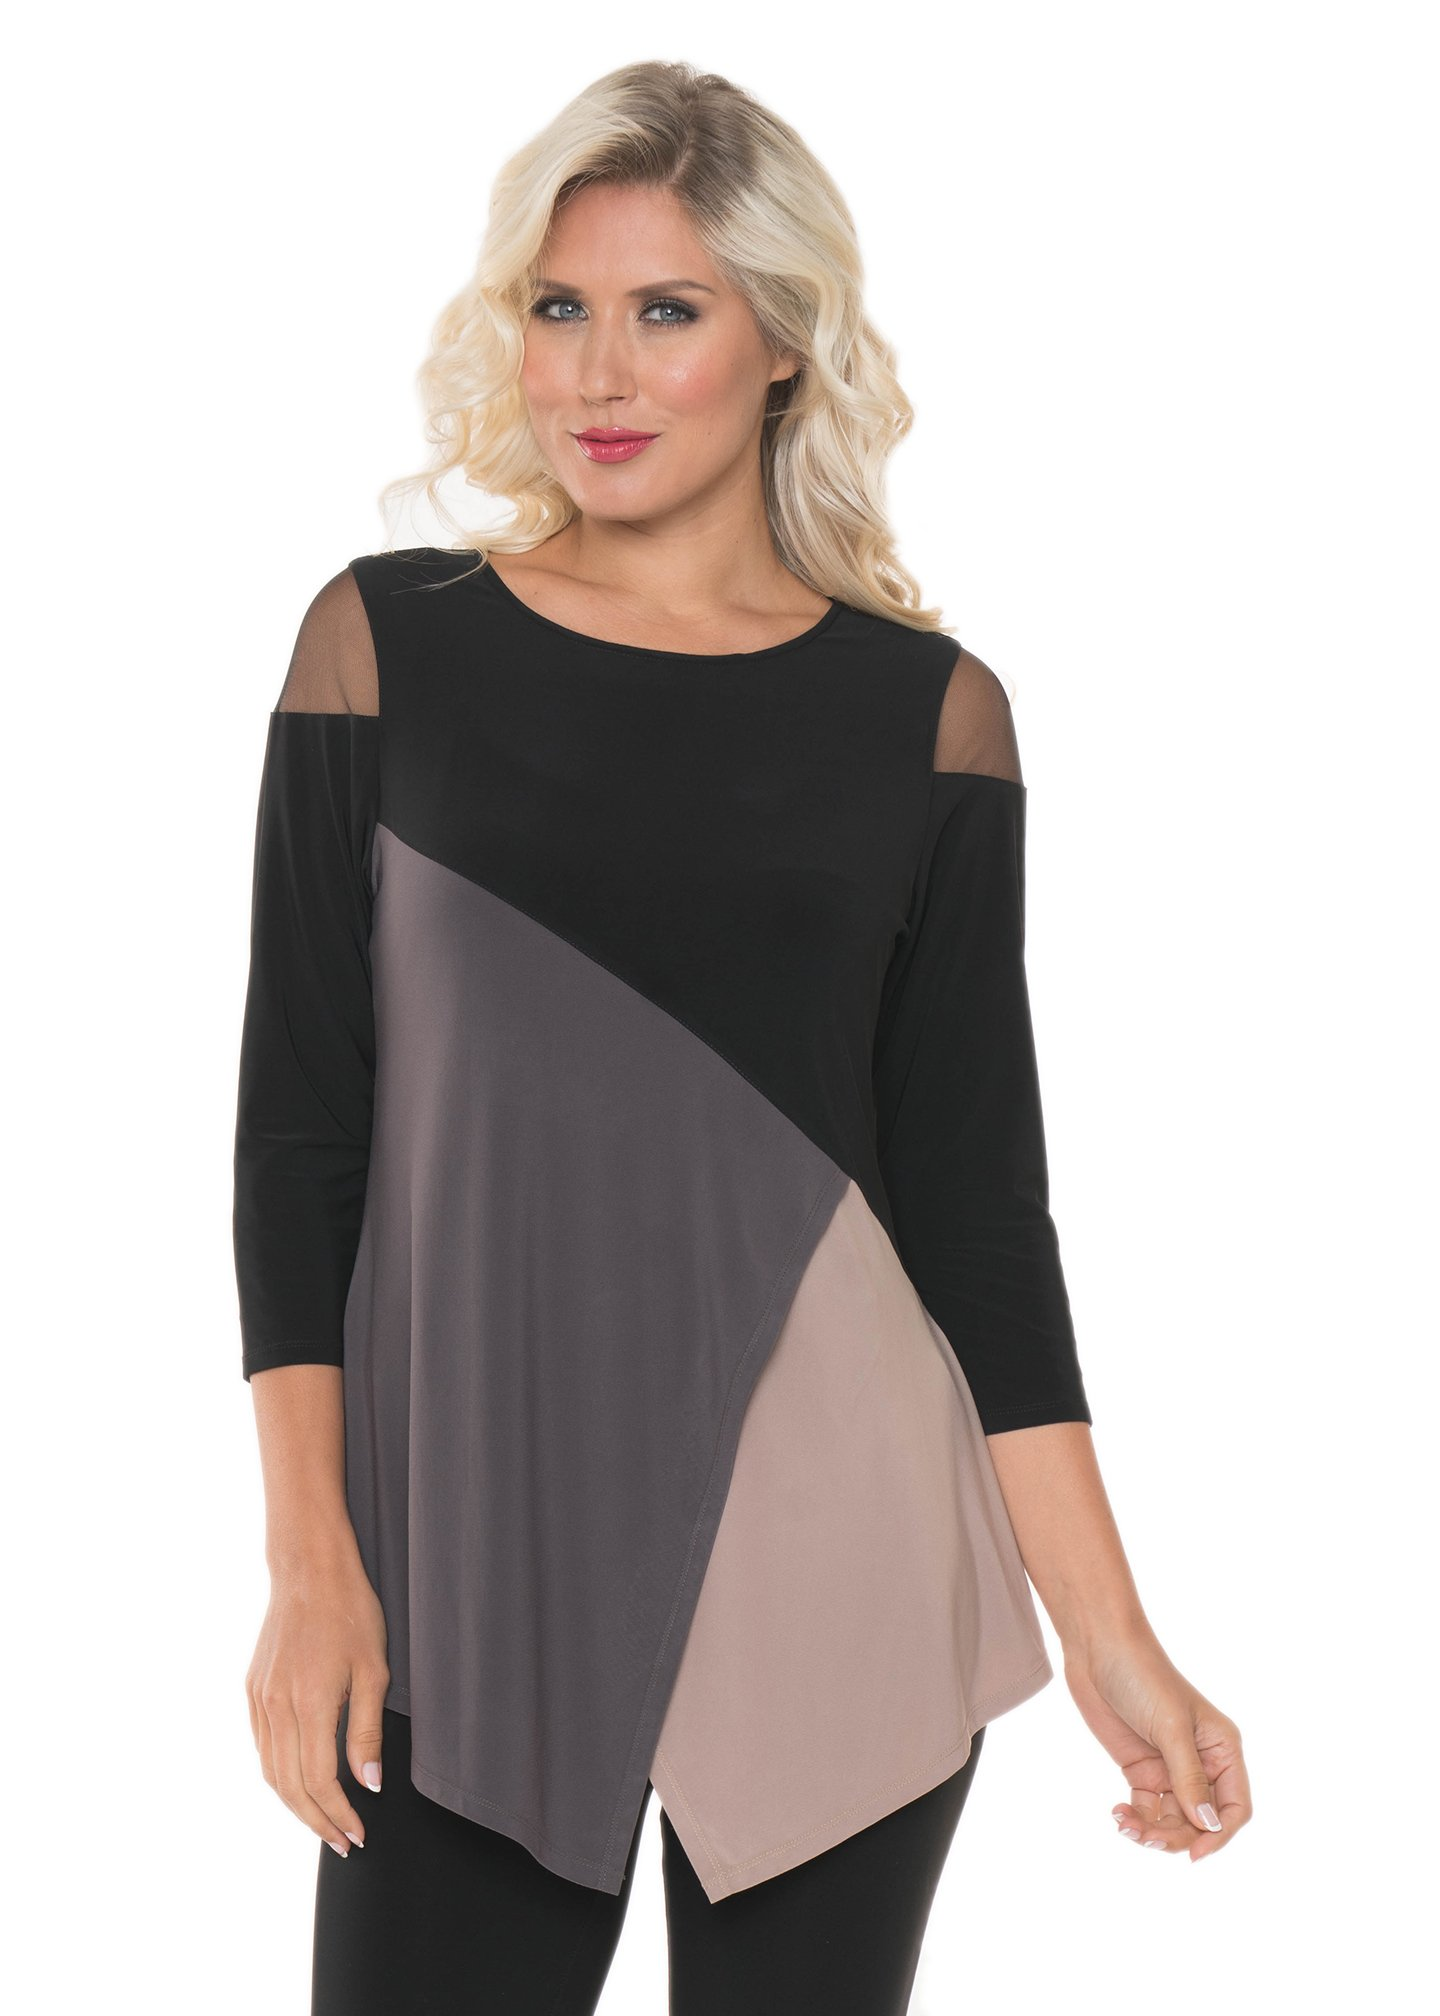 Lior Paris Women's Black Nude & Grey Tunic with Peep Hole Cold Shoulder Mesh Three Quarter Sleeve Round Neck